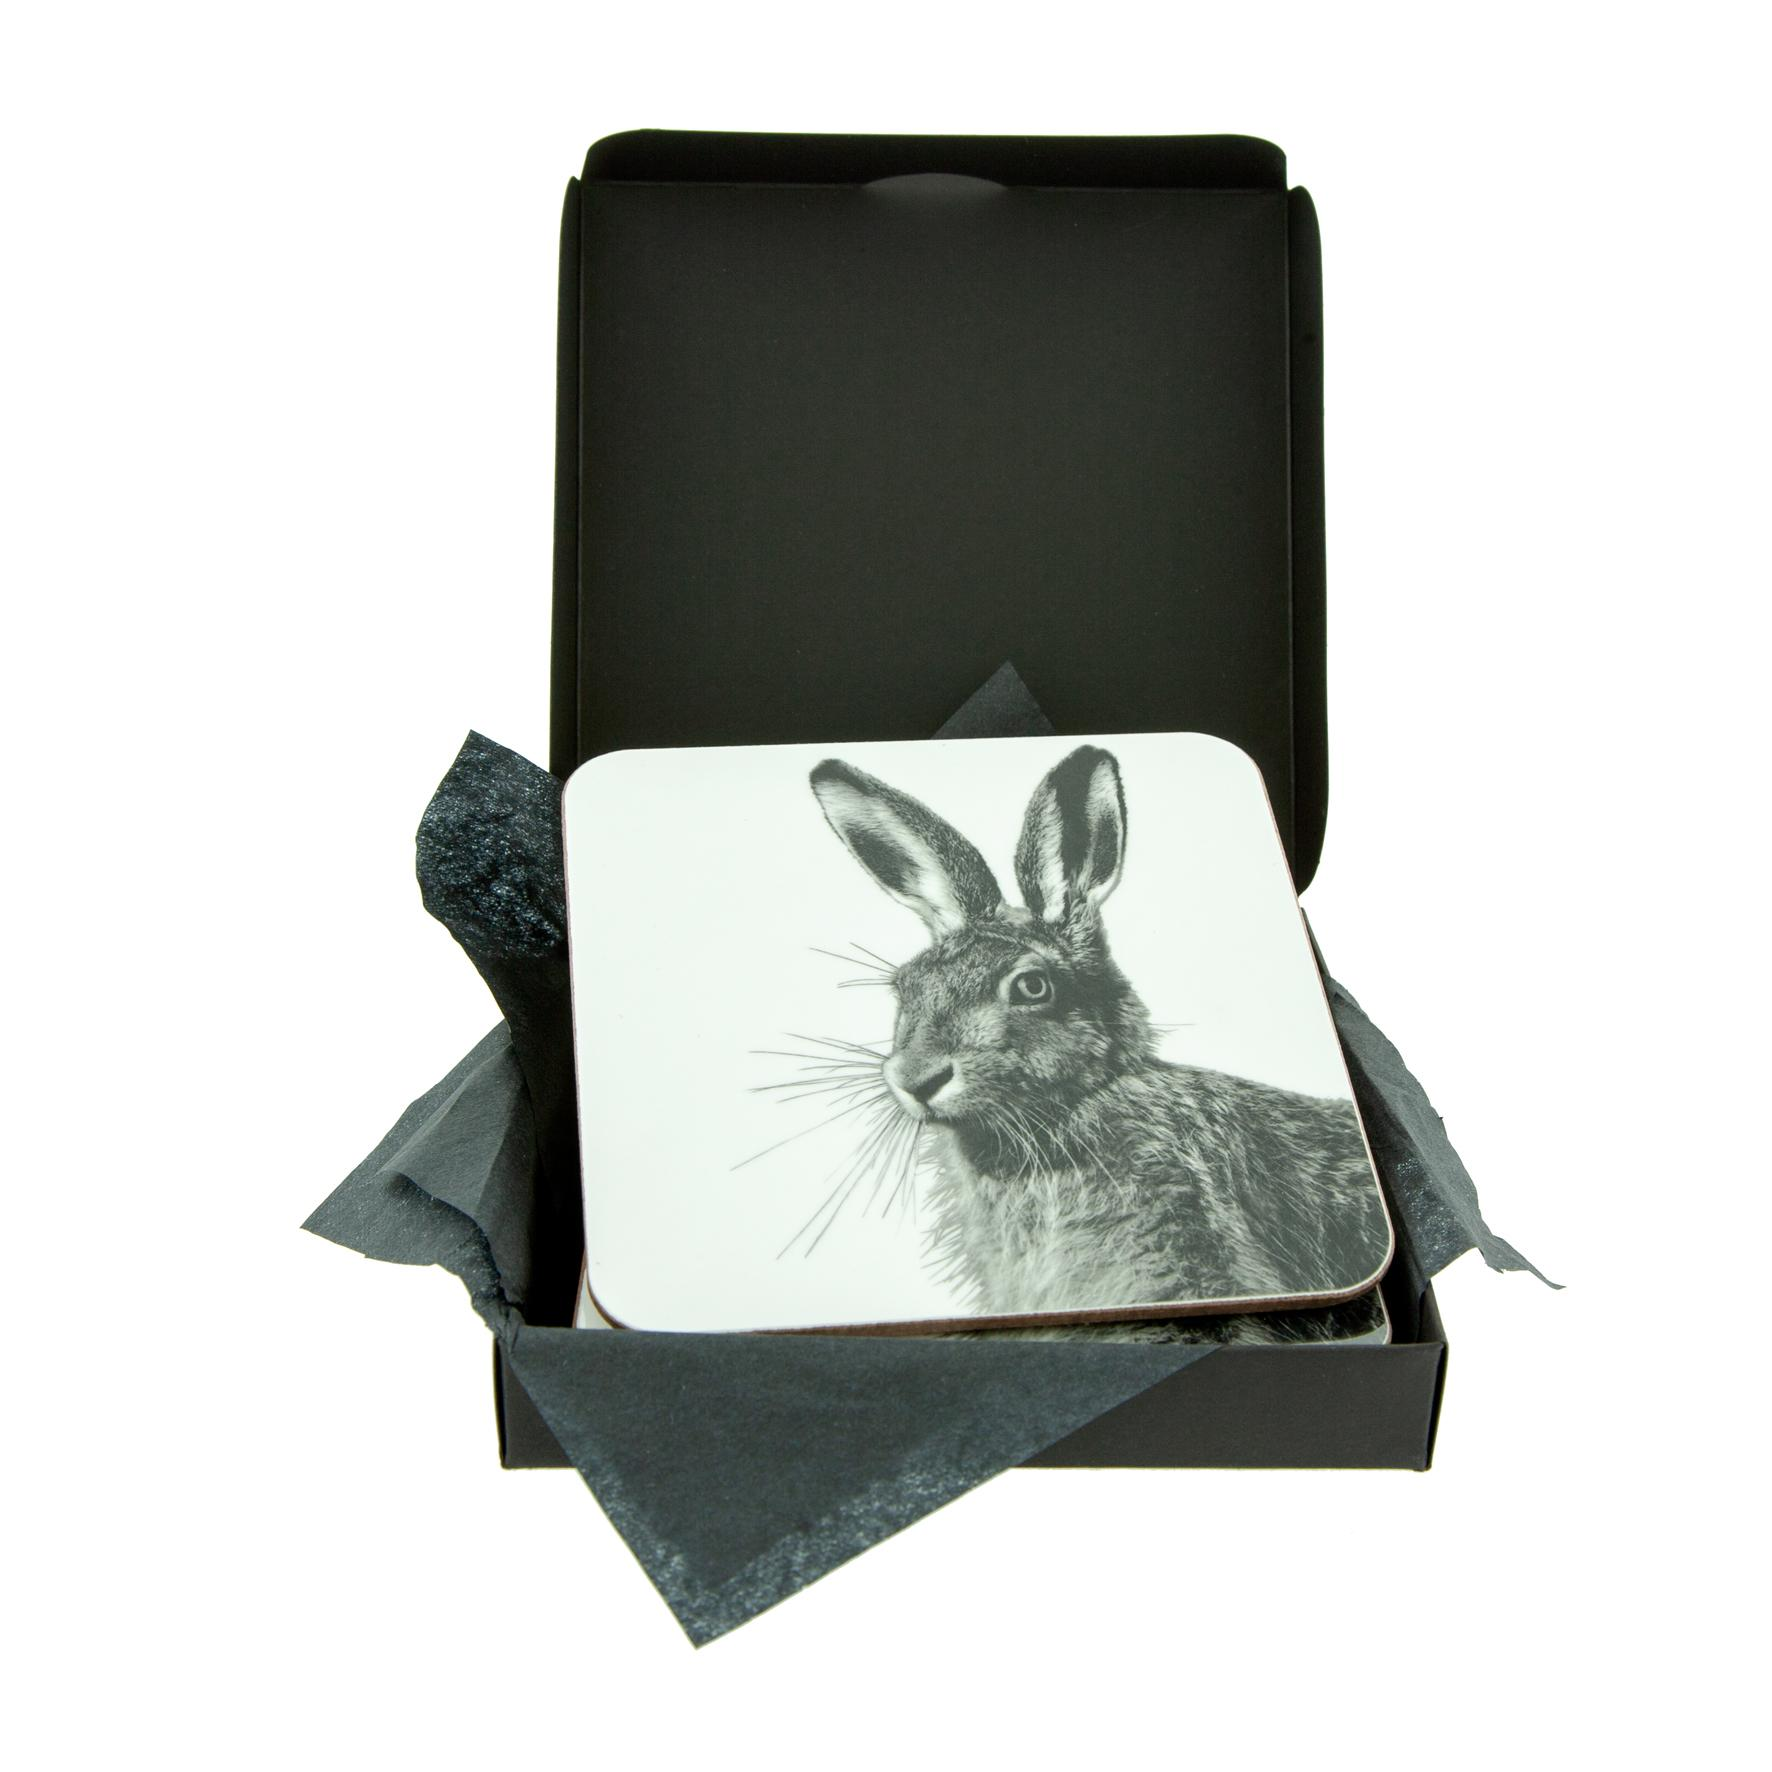 Hare Coaster - White